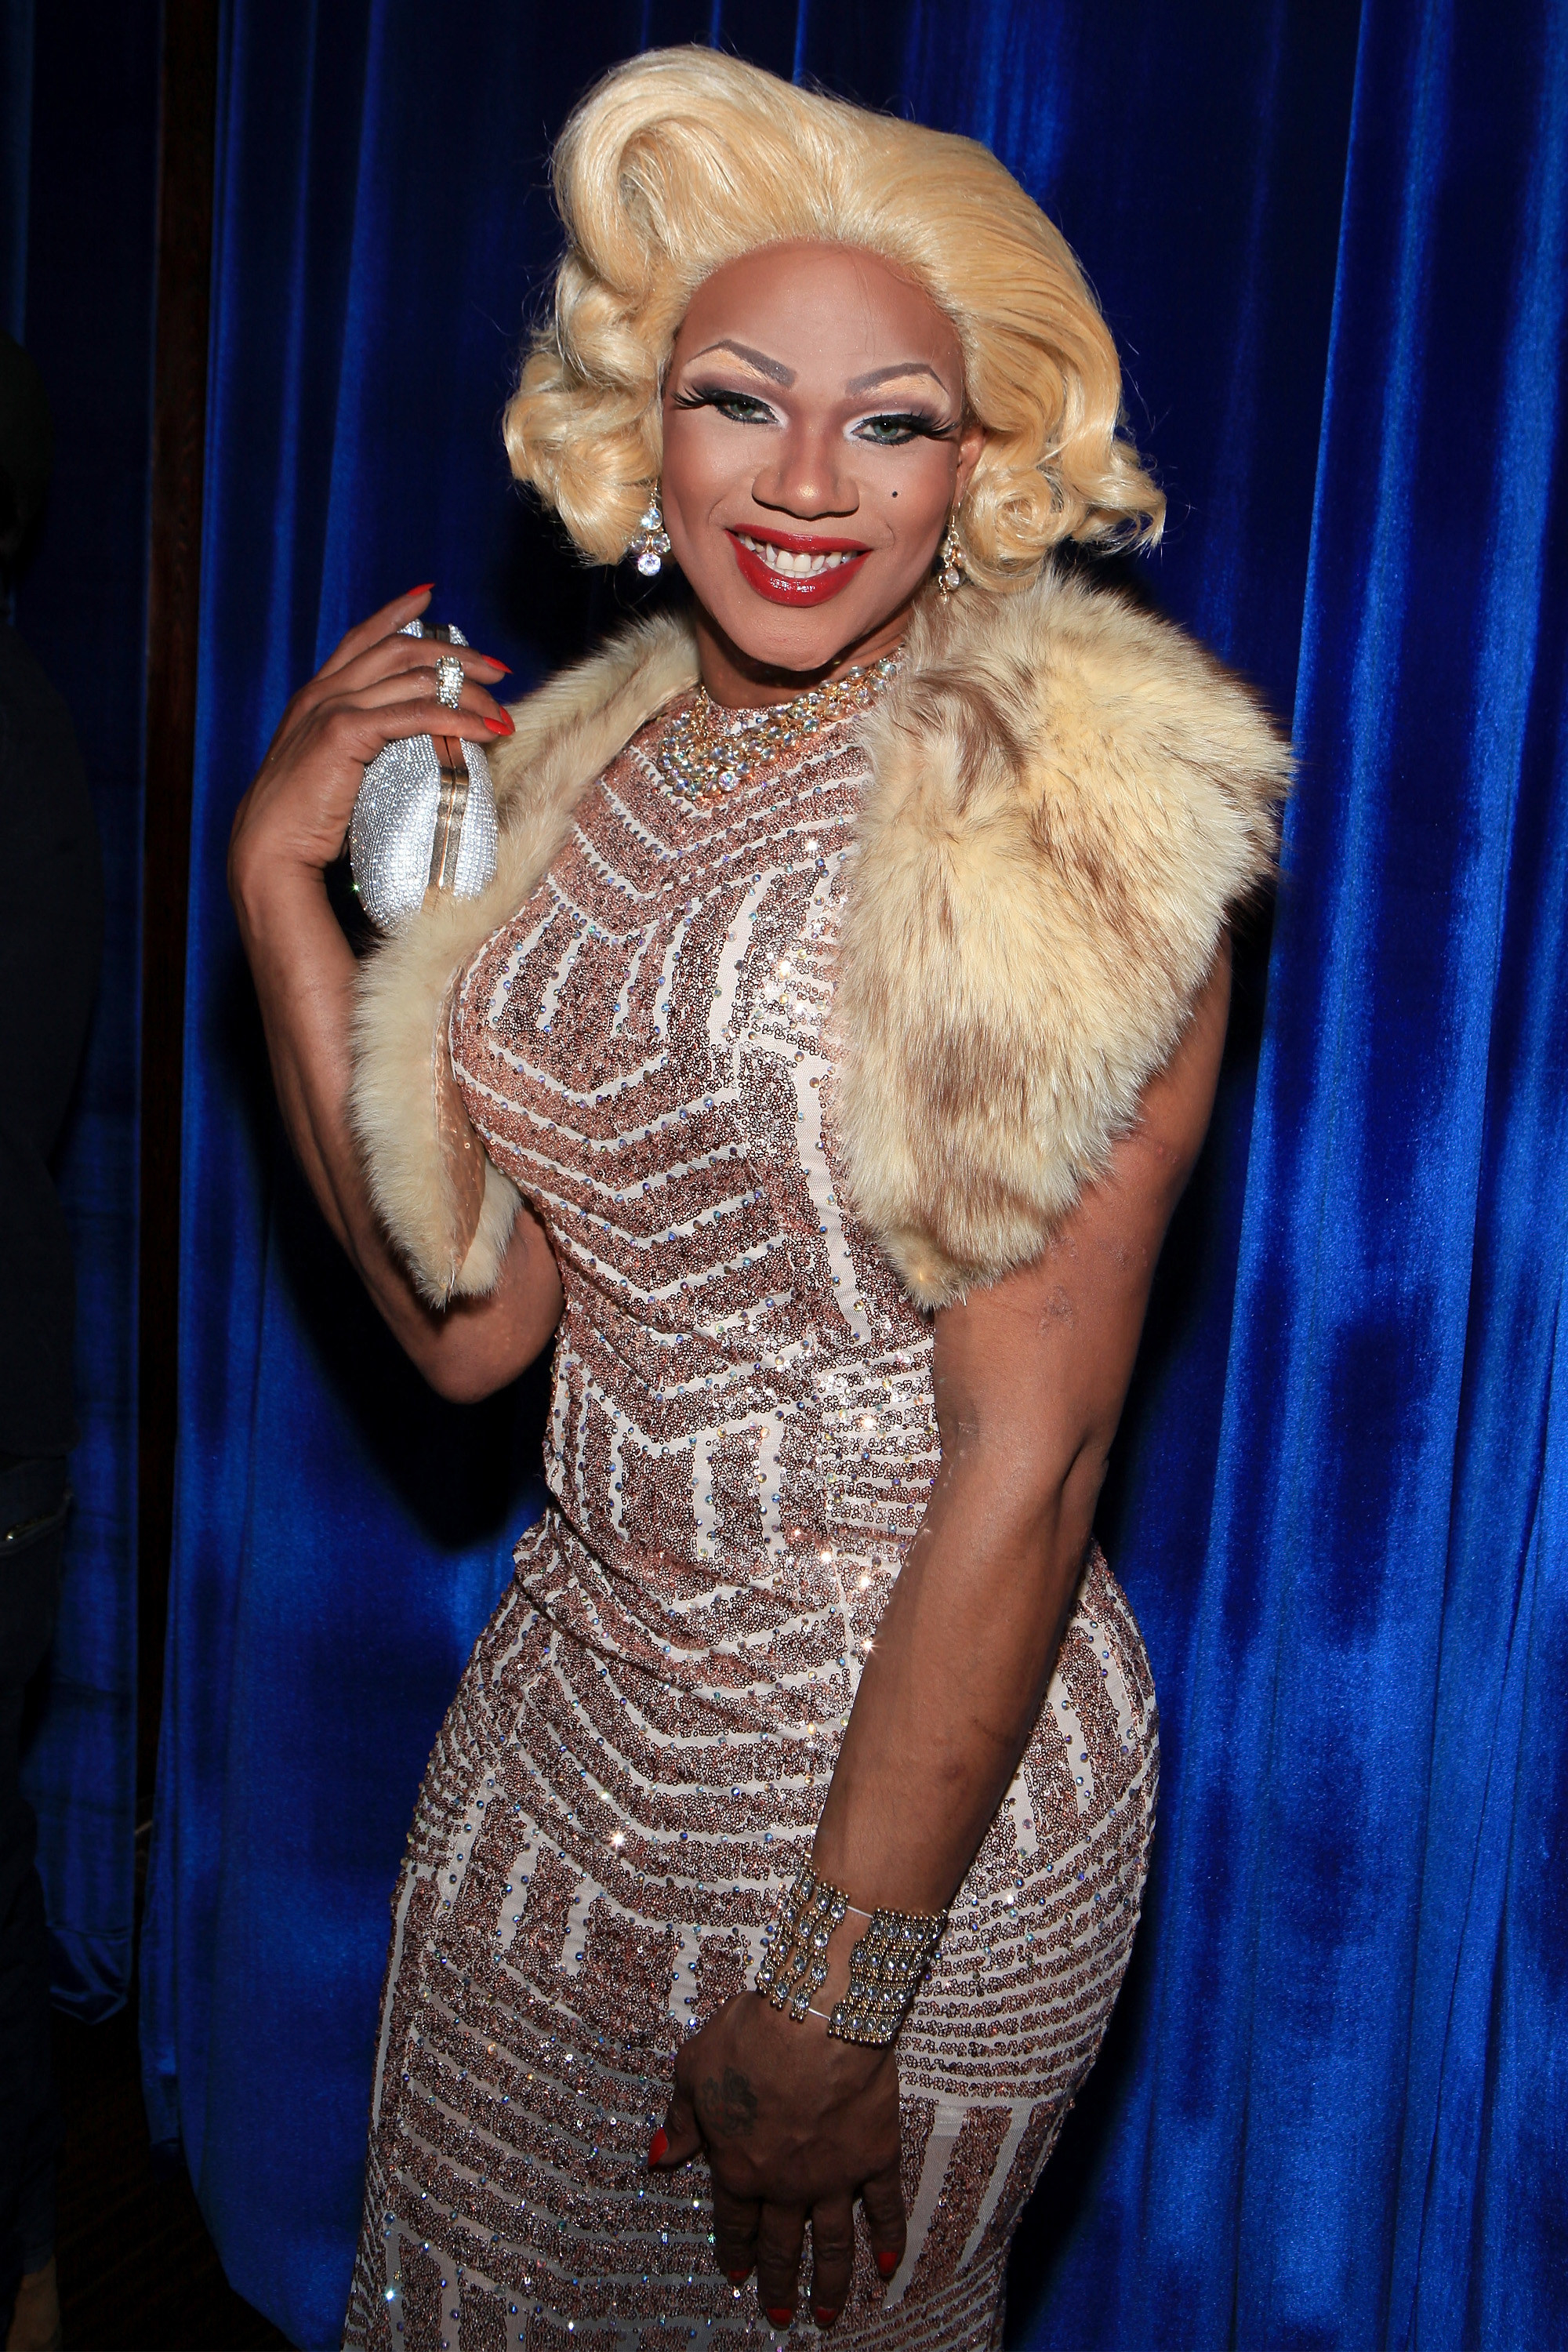 Chi Chi DeVayne smiling at the camera in a sparkly dress and with full makeup